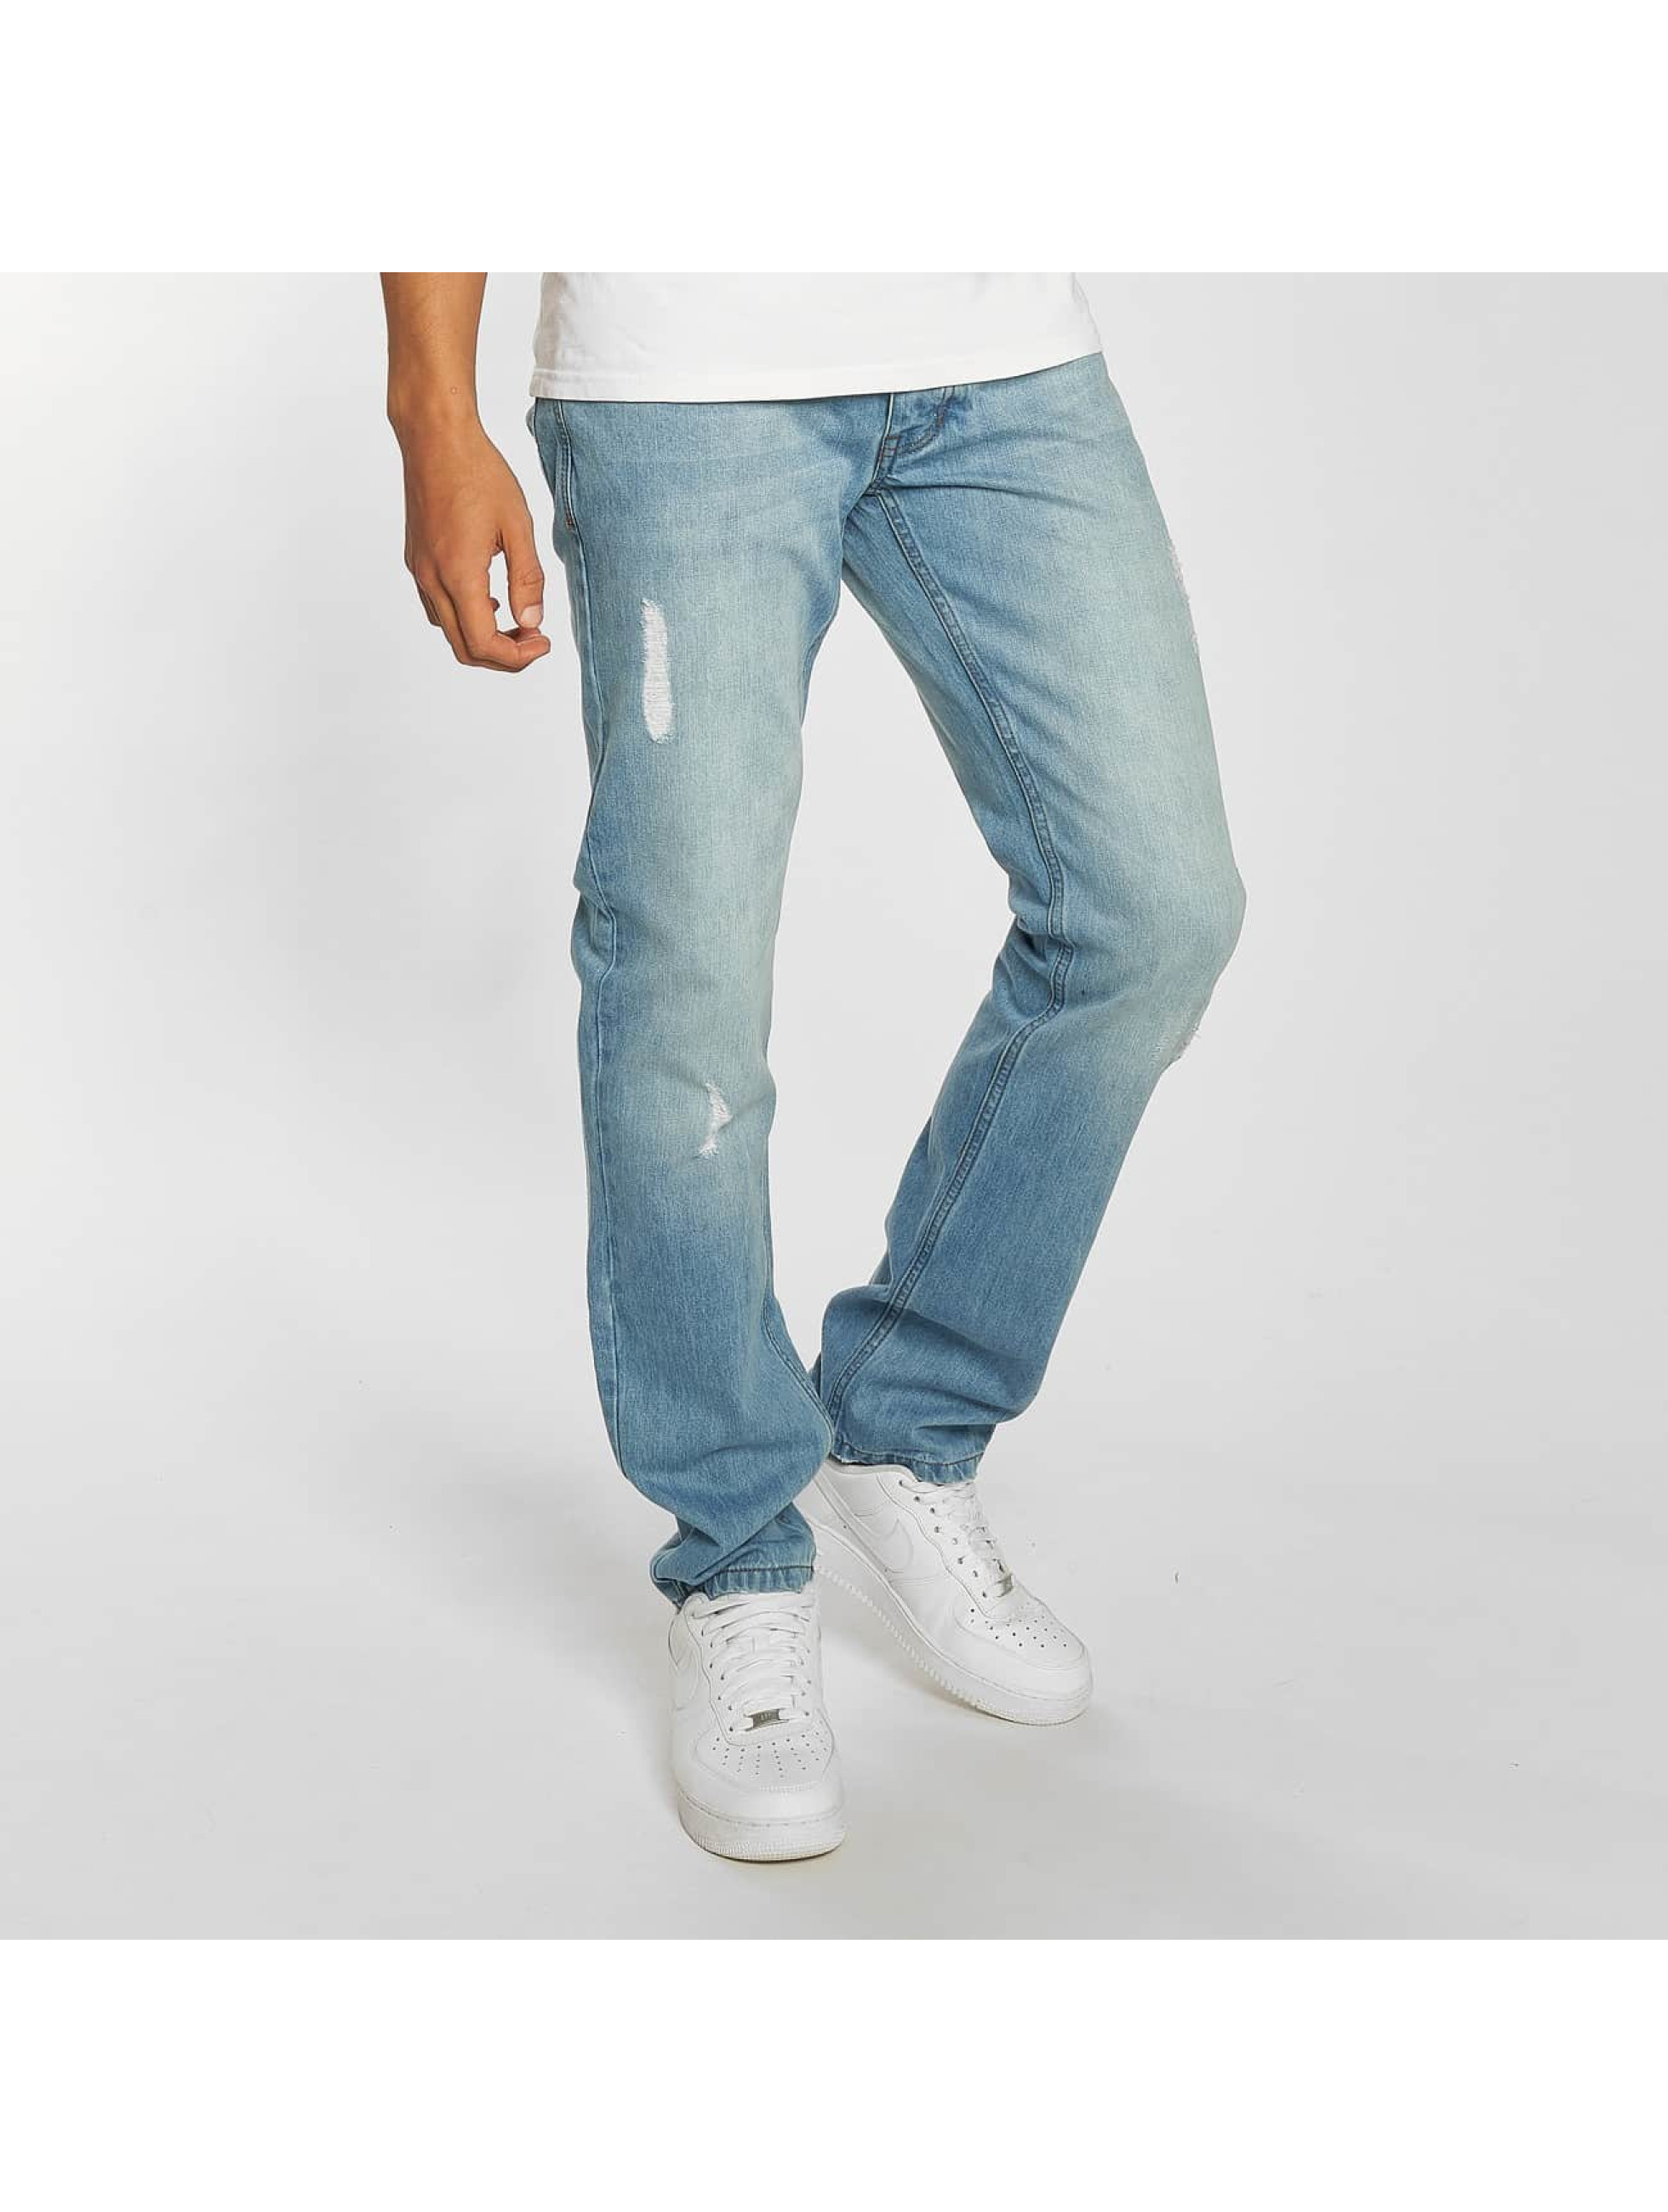 Rocawear / Straight Fit Jeans Moletro Leather Patch in blue W 42